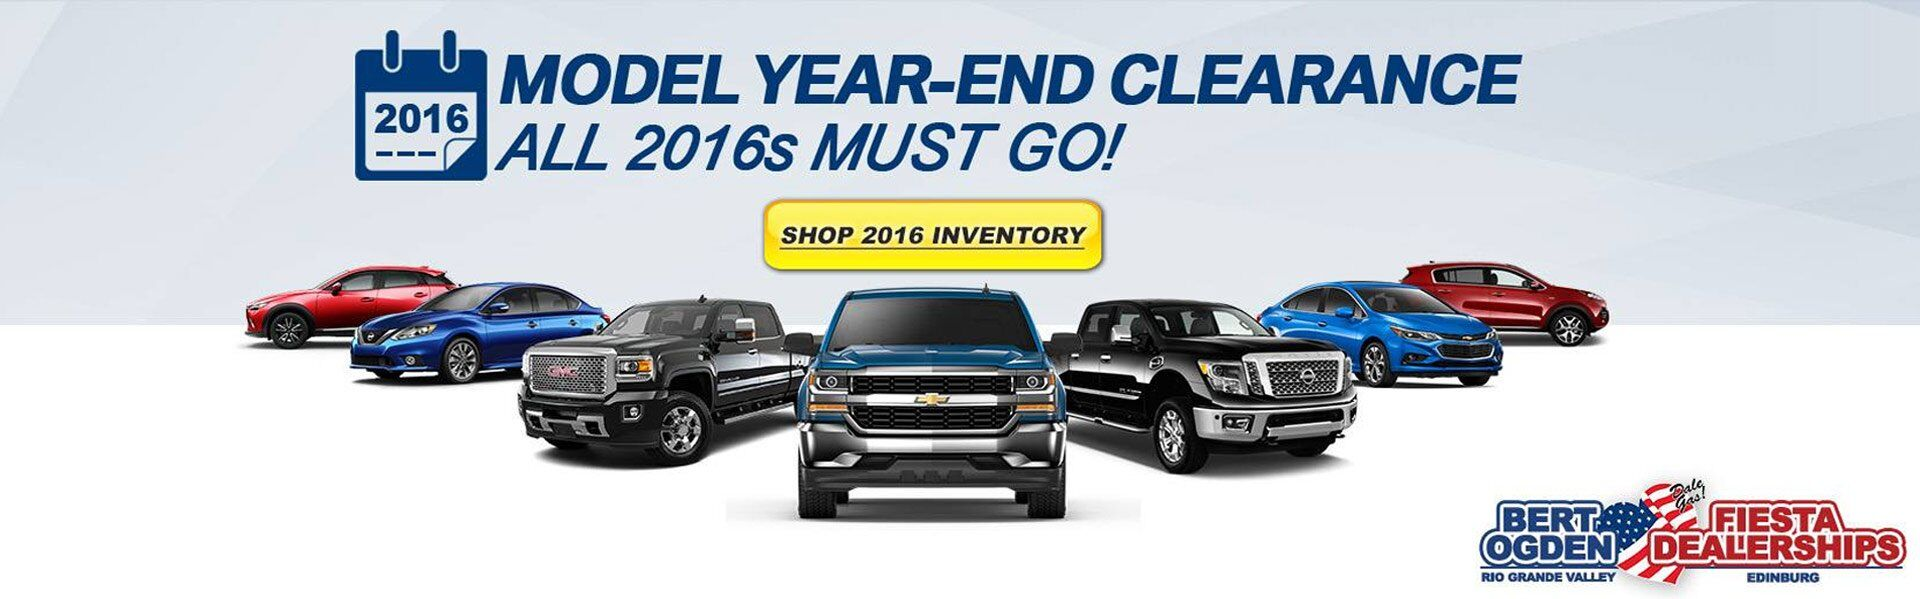 Model Year End Clearance at Bert Ogden Auto Group